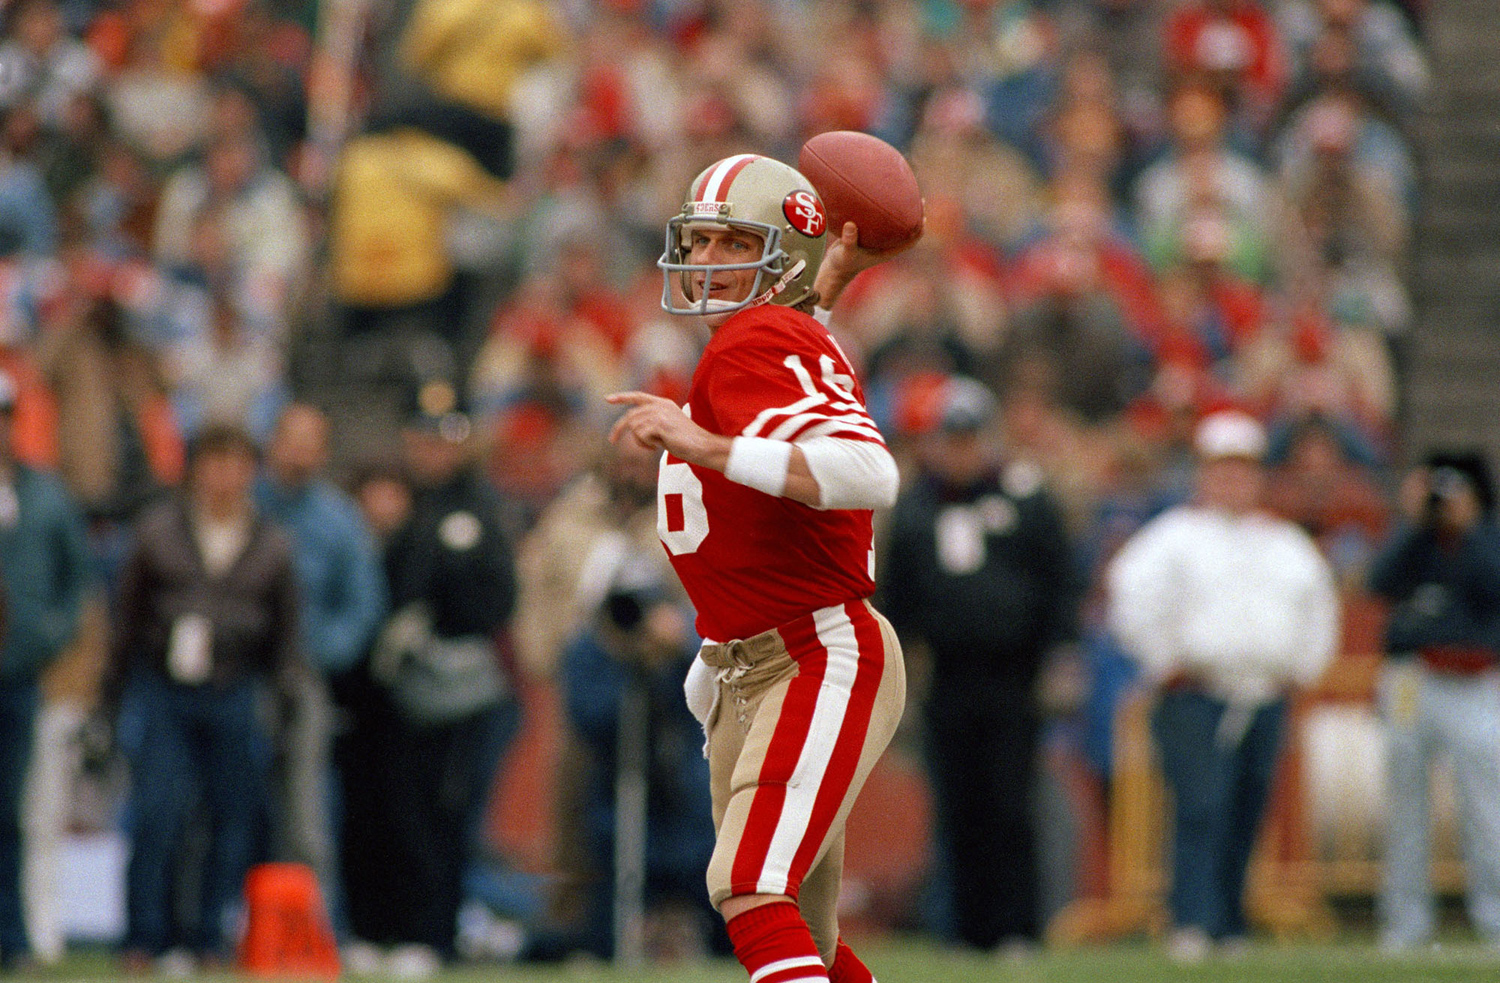 San Francisco 49ers quarterback Joe Montana drops back to fire off a pass against the New York Giants during the first half of their NFC playoff game in Candlestick Park on December 29, 1984. Montana threw three touchdown passes to lead the 49ers to a 21-10 win over the Giants.